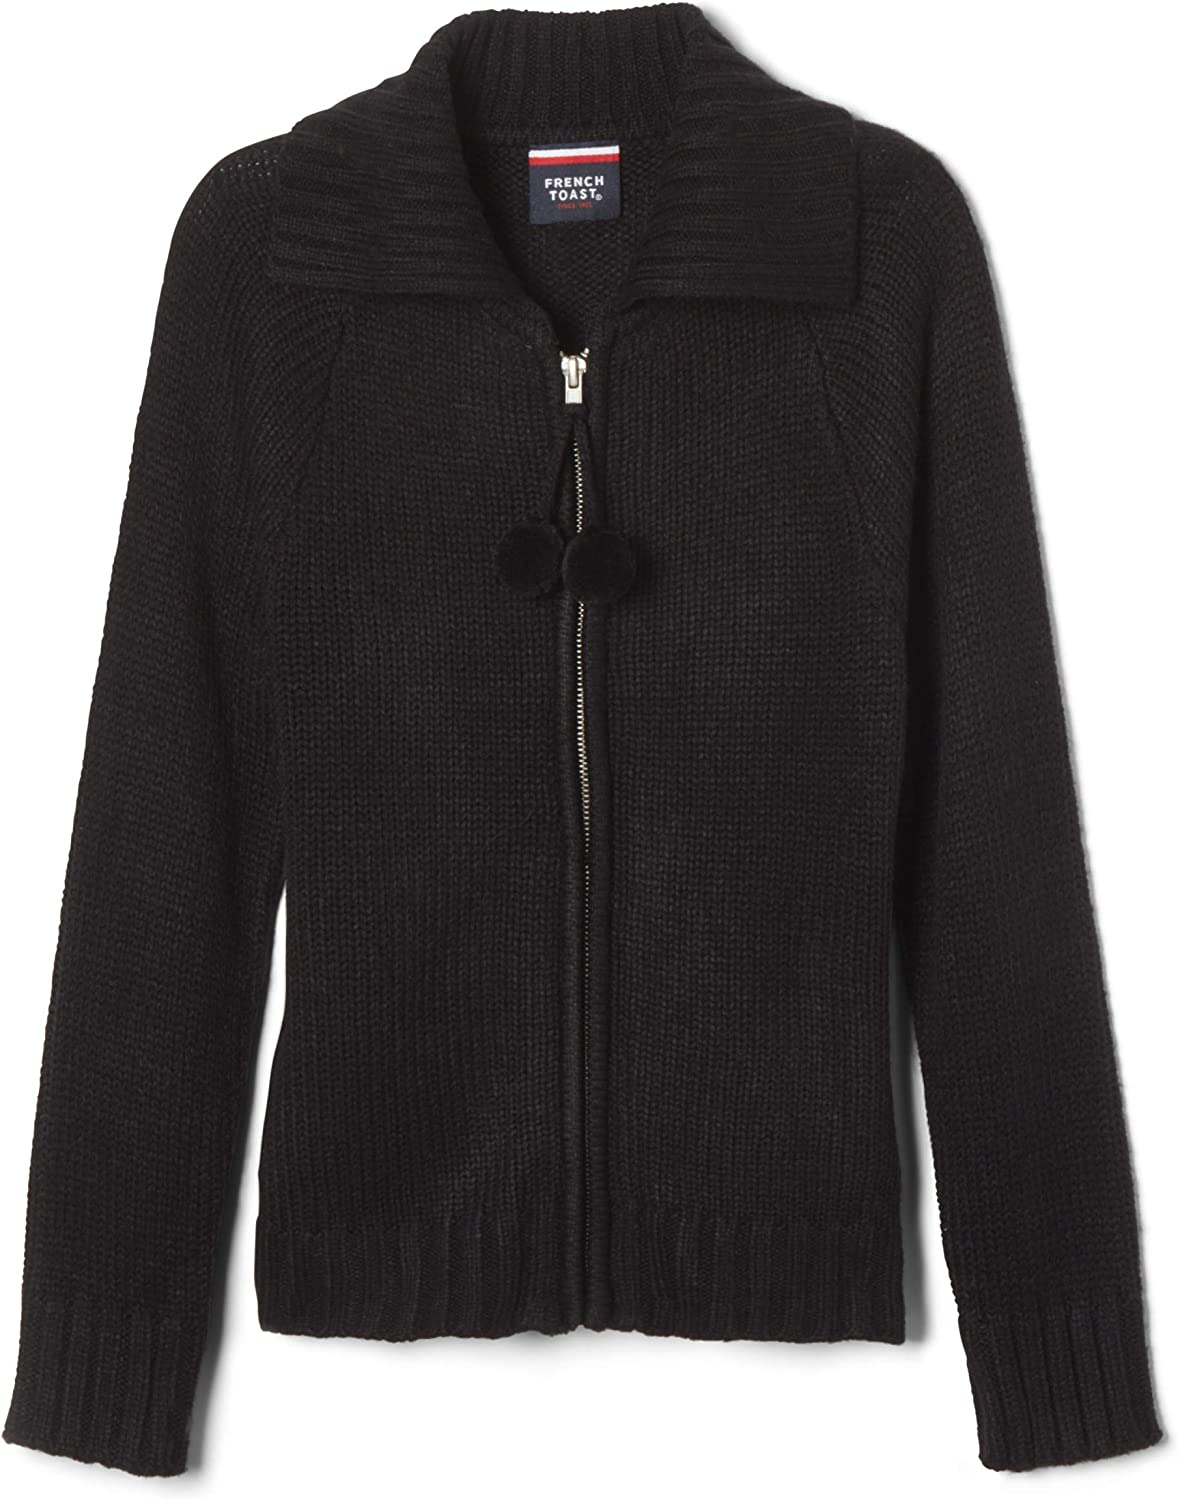 French Toast Big Girls Pom Pom Zip Up Sweater